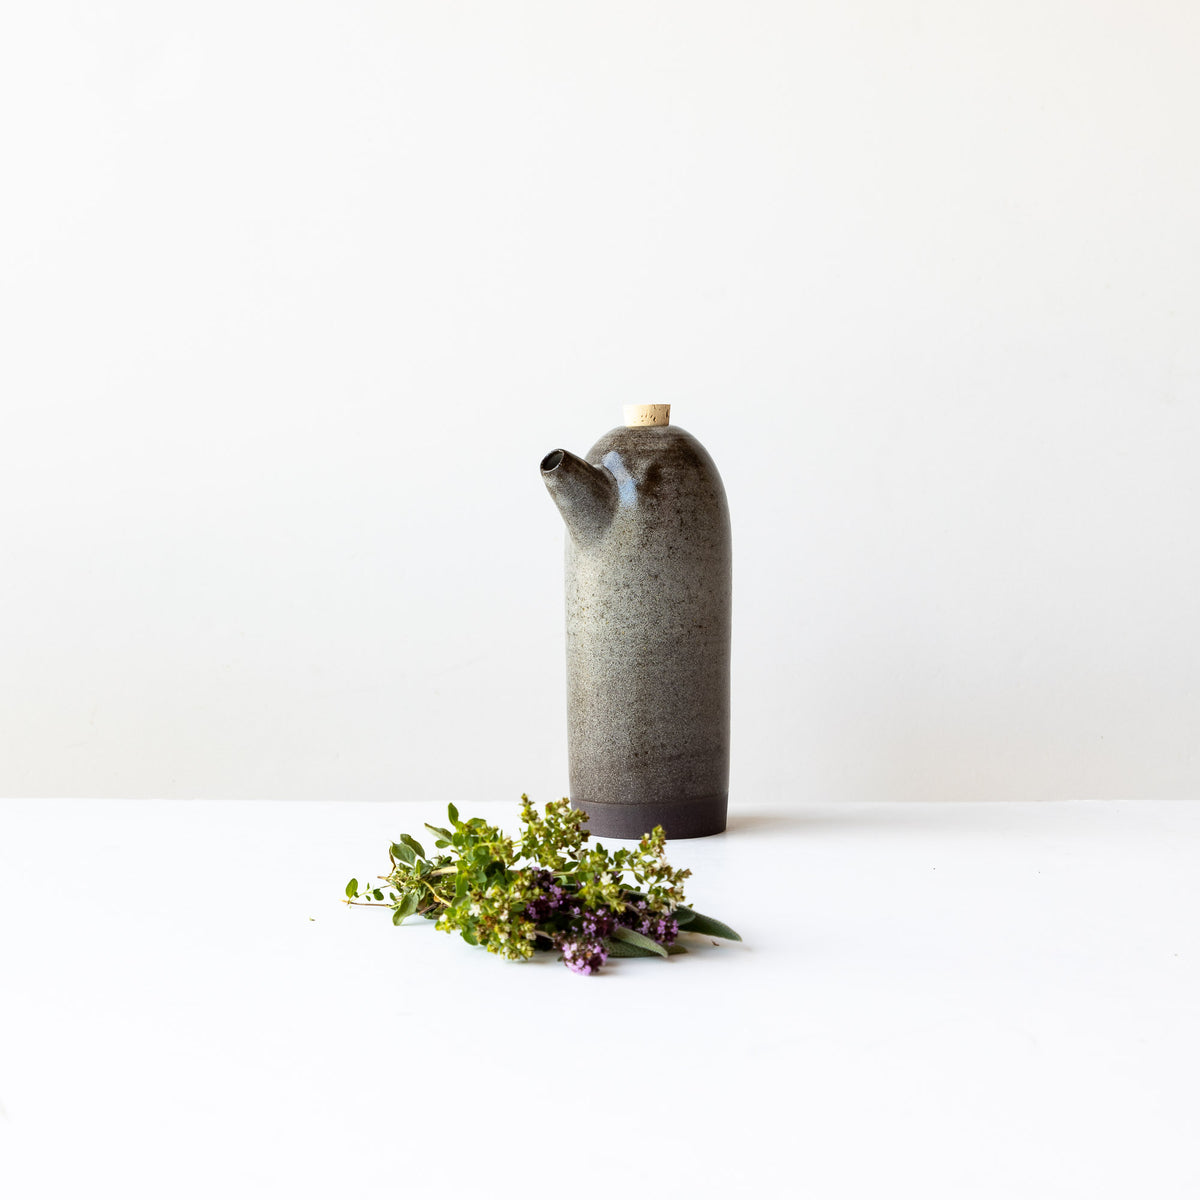 Grey Handmade Stoneware Vinegar Bottle - Sold by Chic & Basta